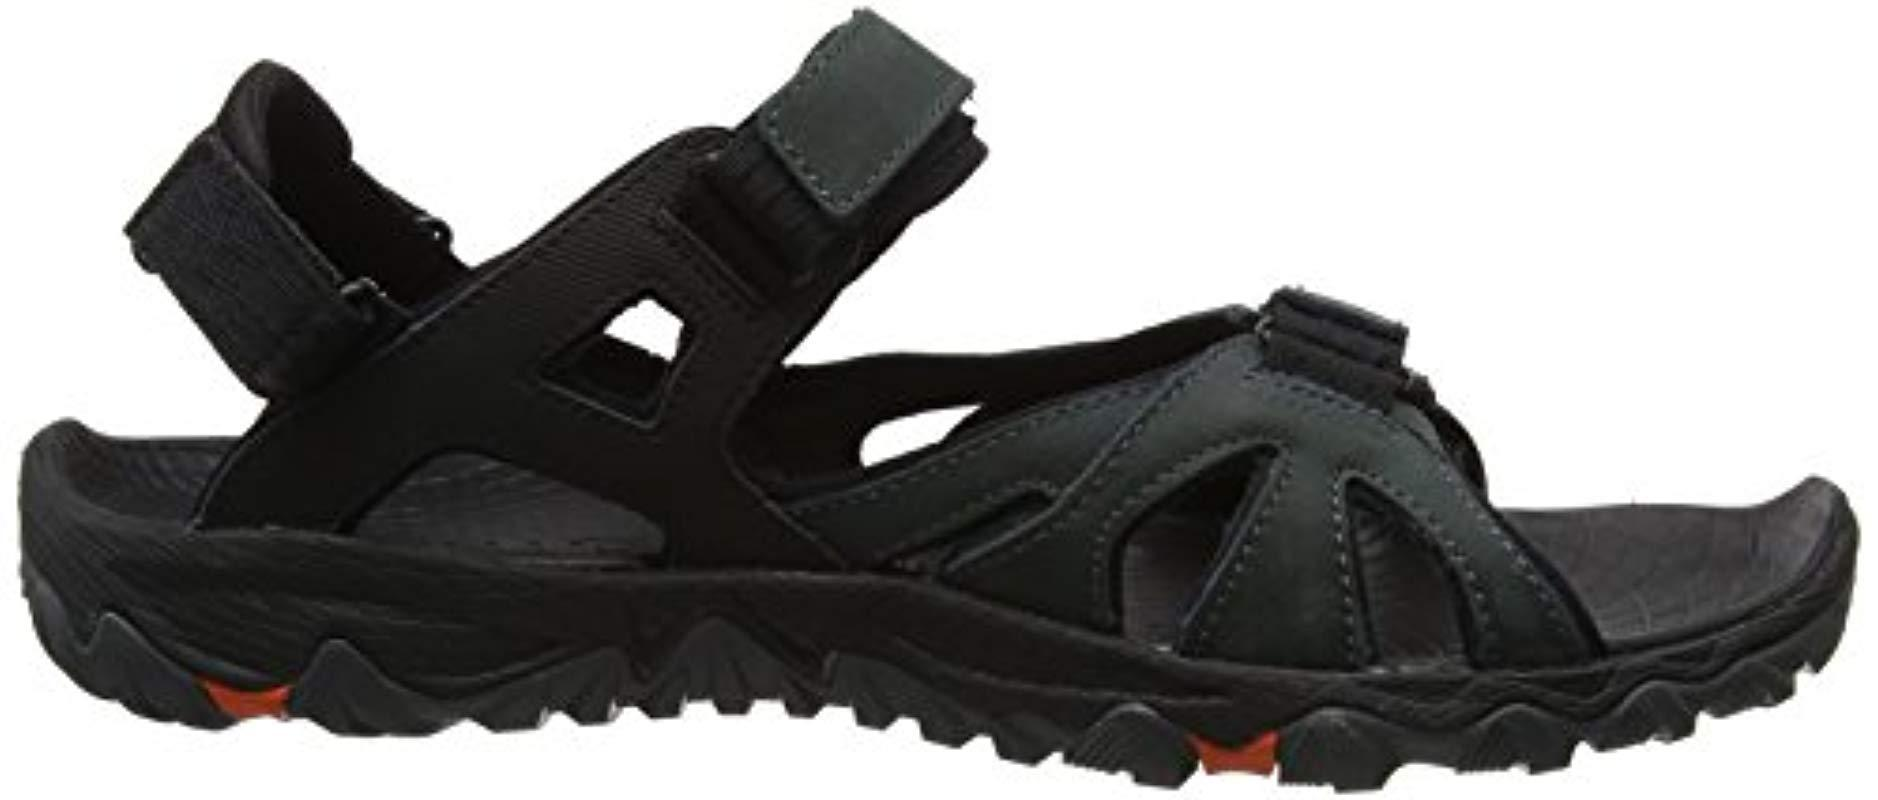 5c460dad3b2a Merrell  s All Out All Out Blaze Sieve Convert Hiking Sandals in Gray for  Men - Save 15% - Lyst